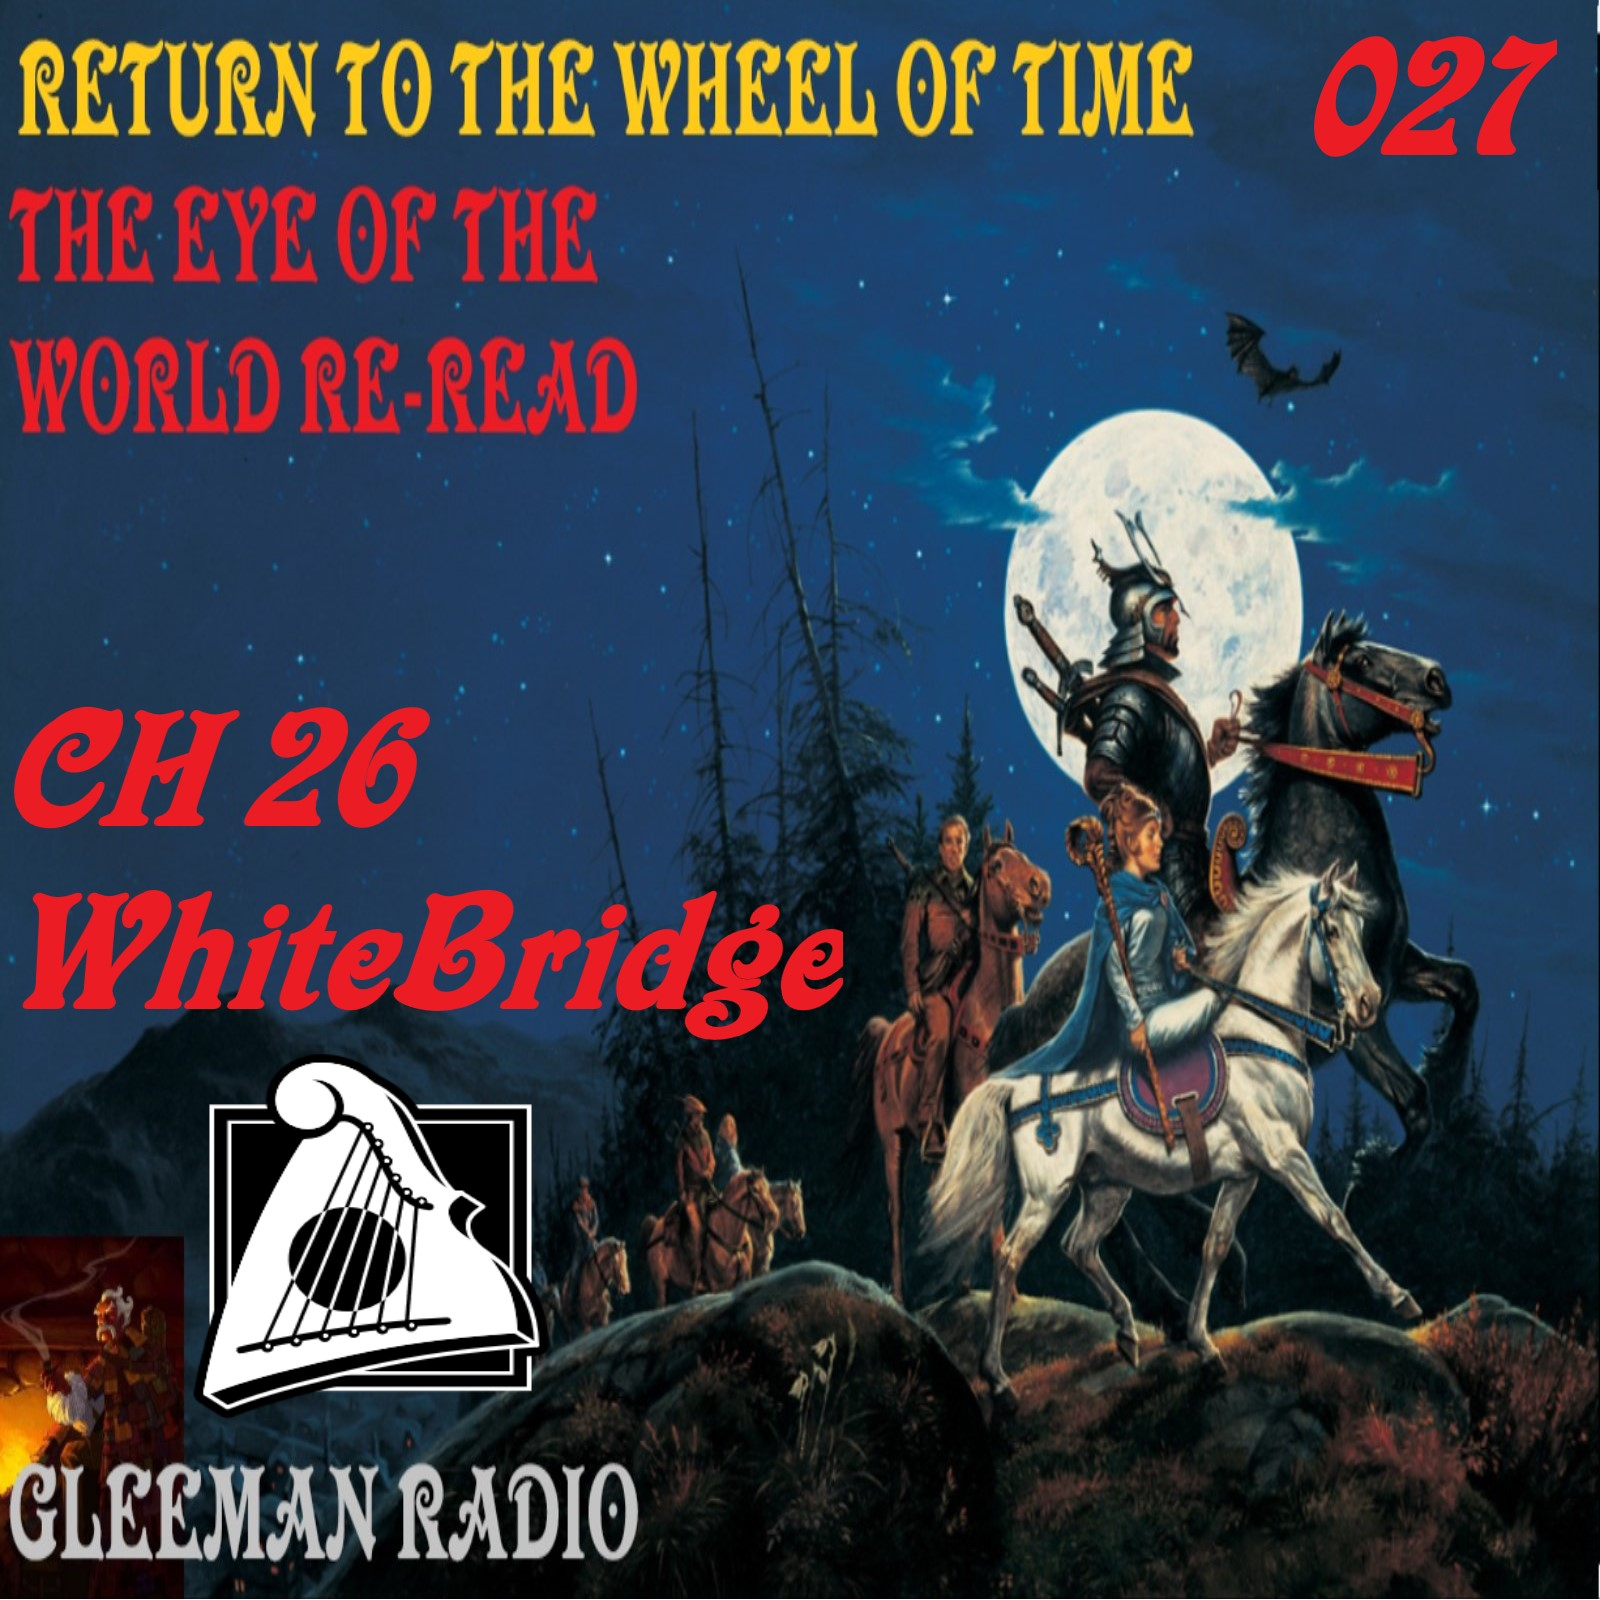 CH 26 - WhiteBridge - TEOTW Reread - Return to the Wheel of Time Ep. 027